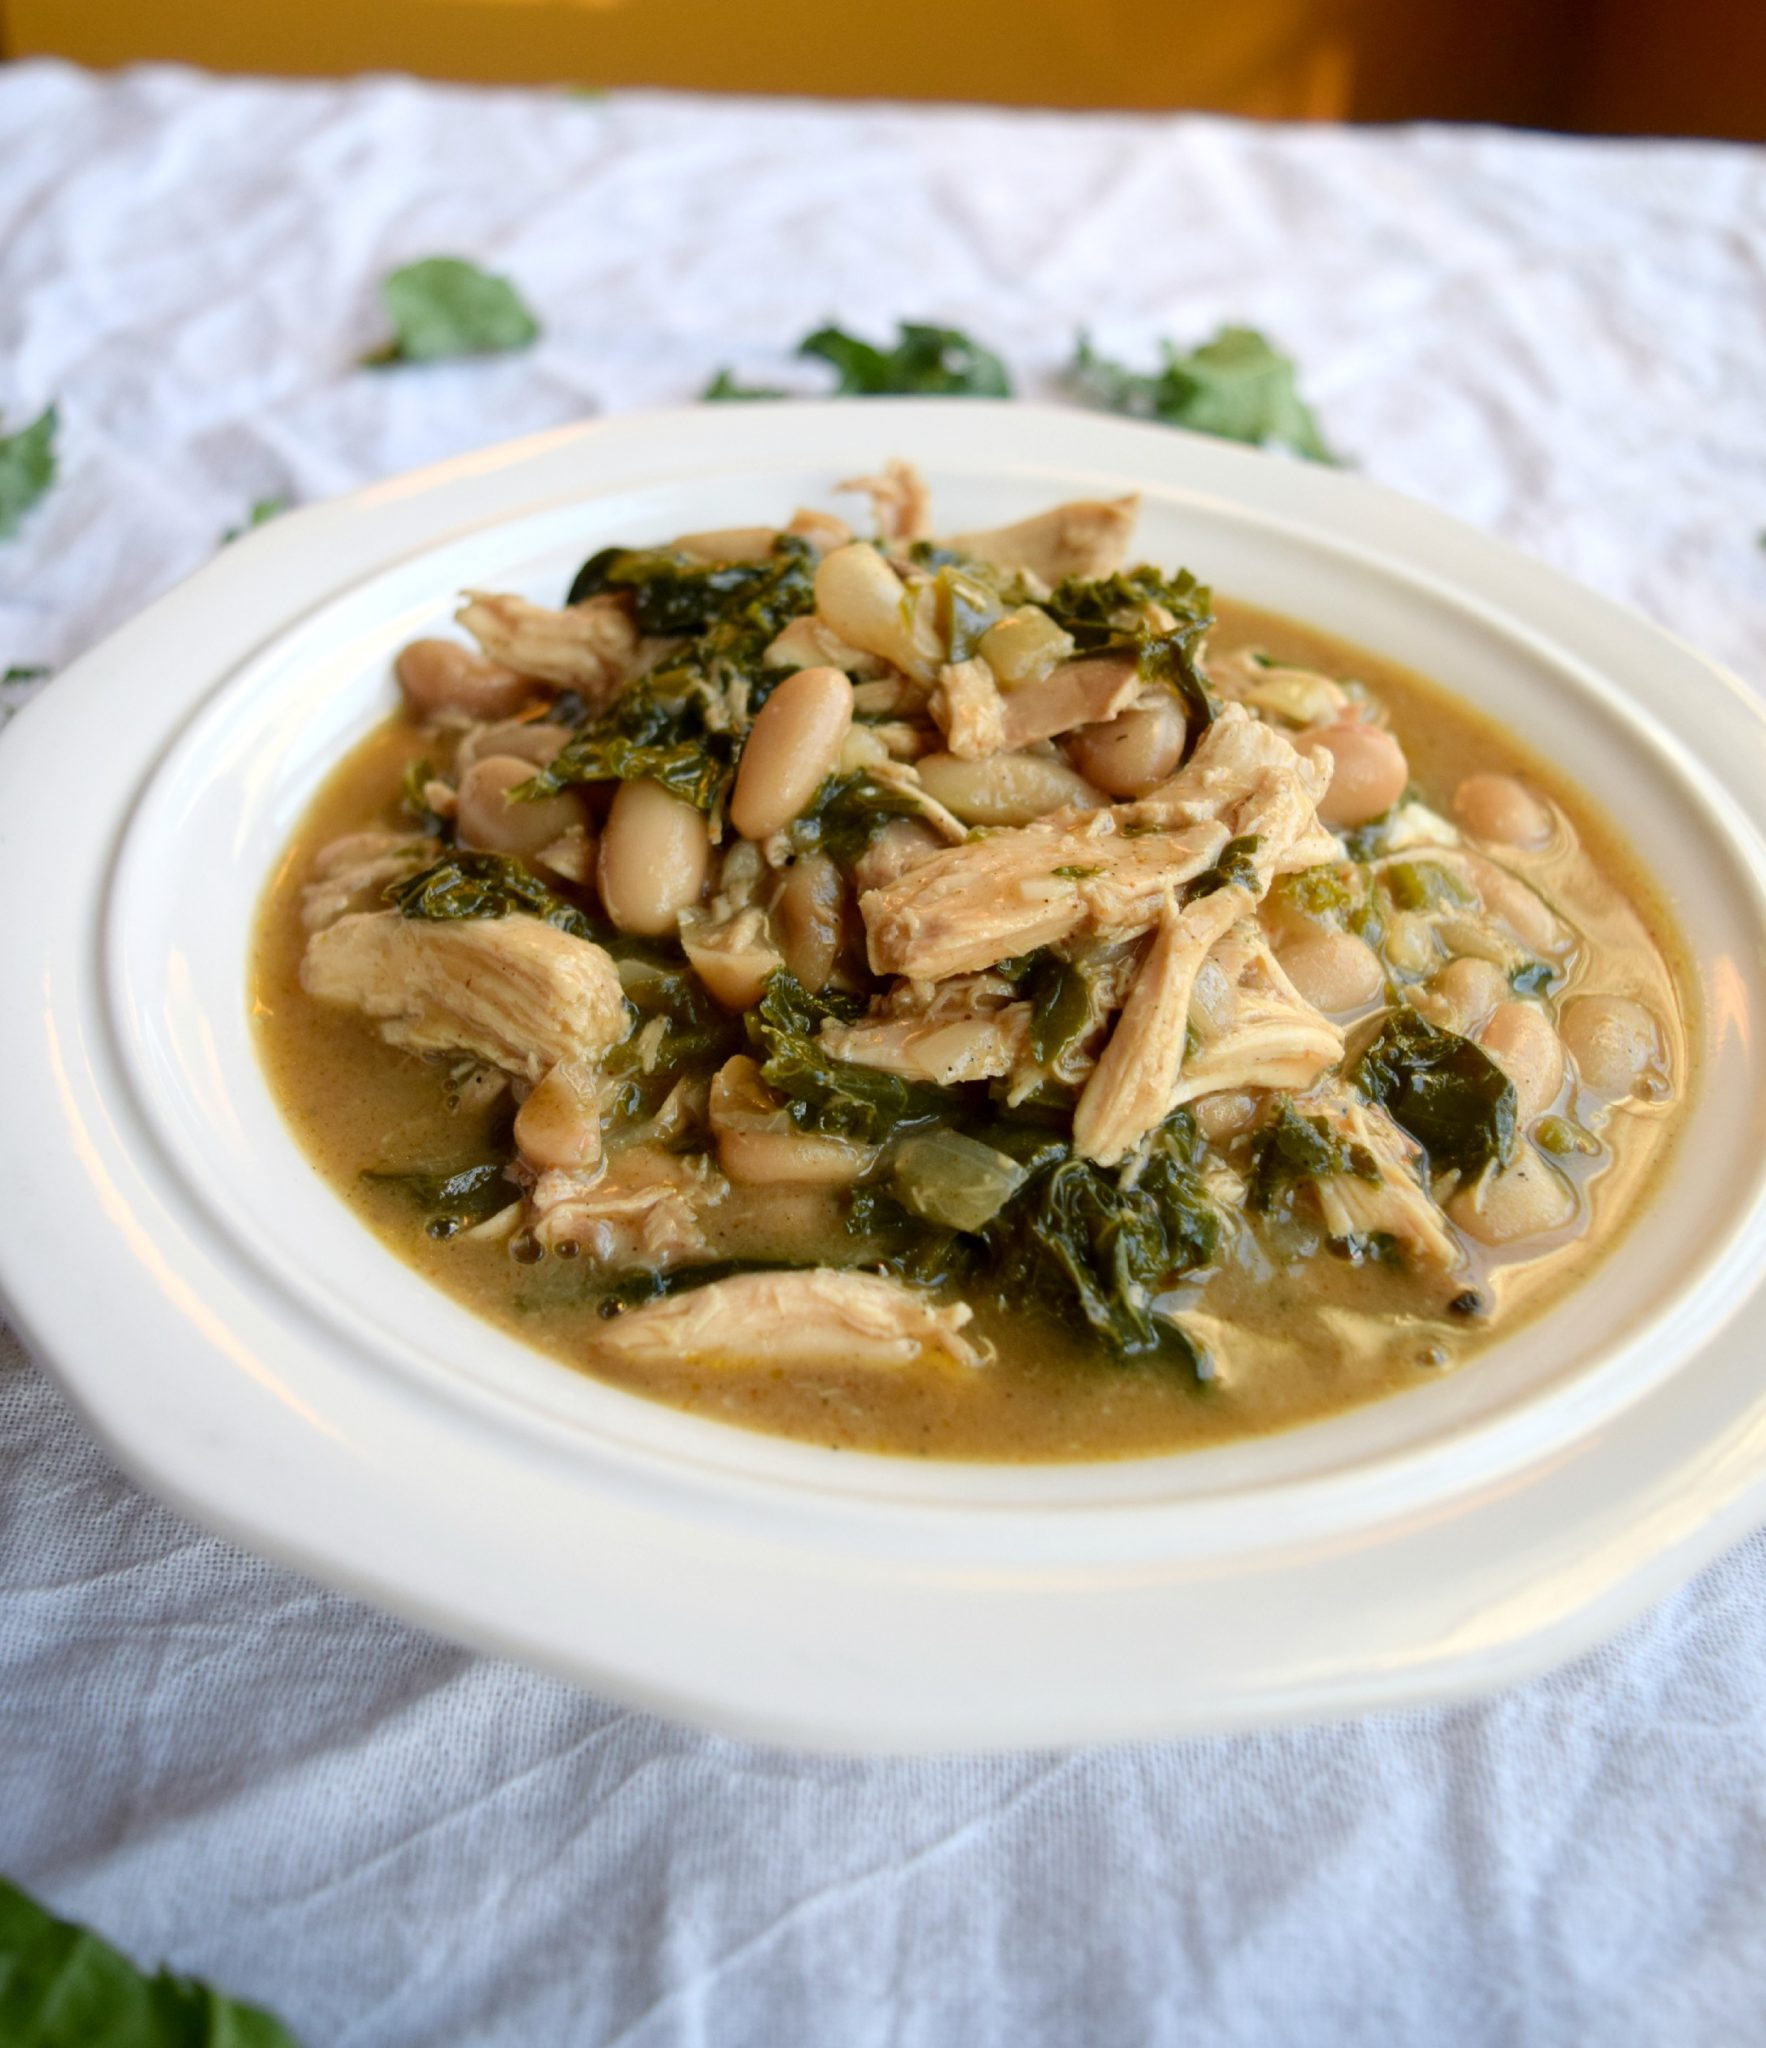 Chicken, Kale, and White Bean Chili